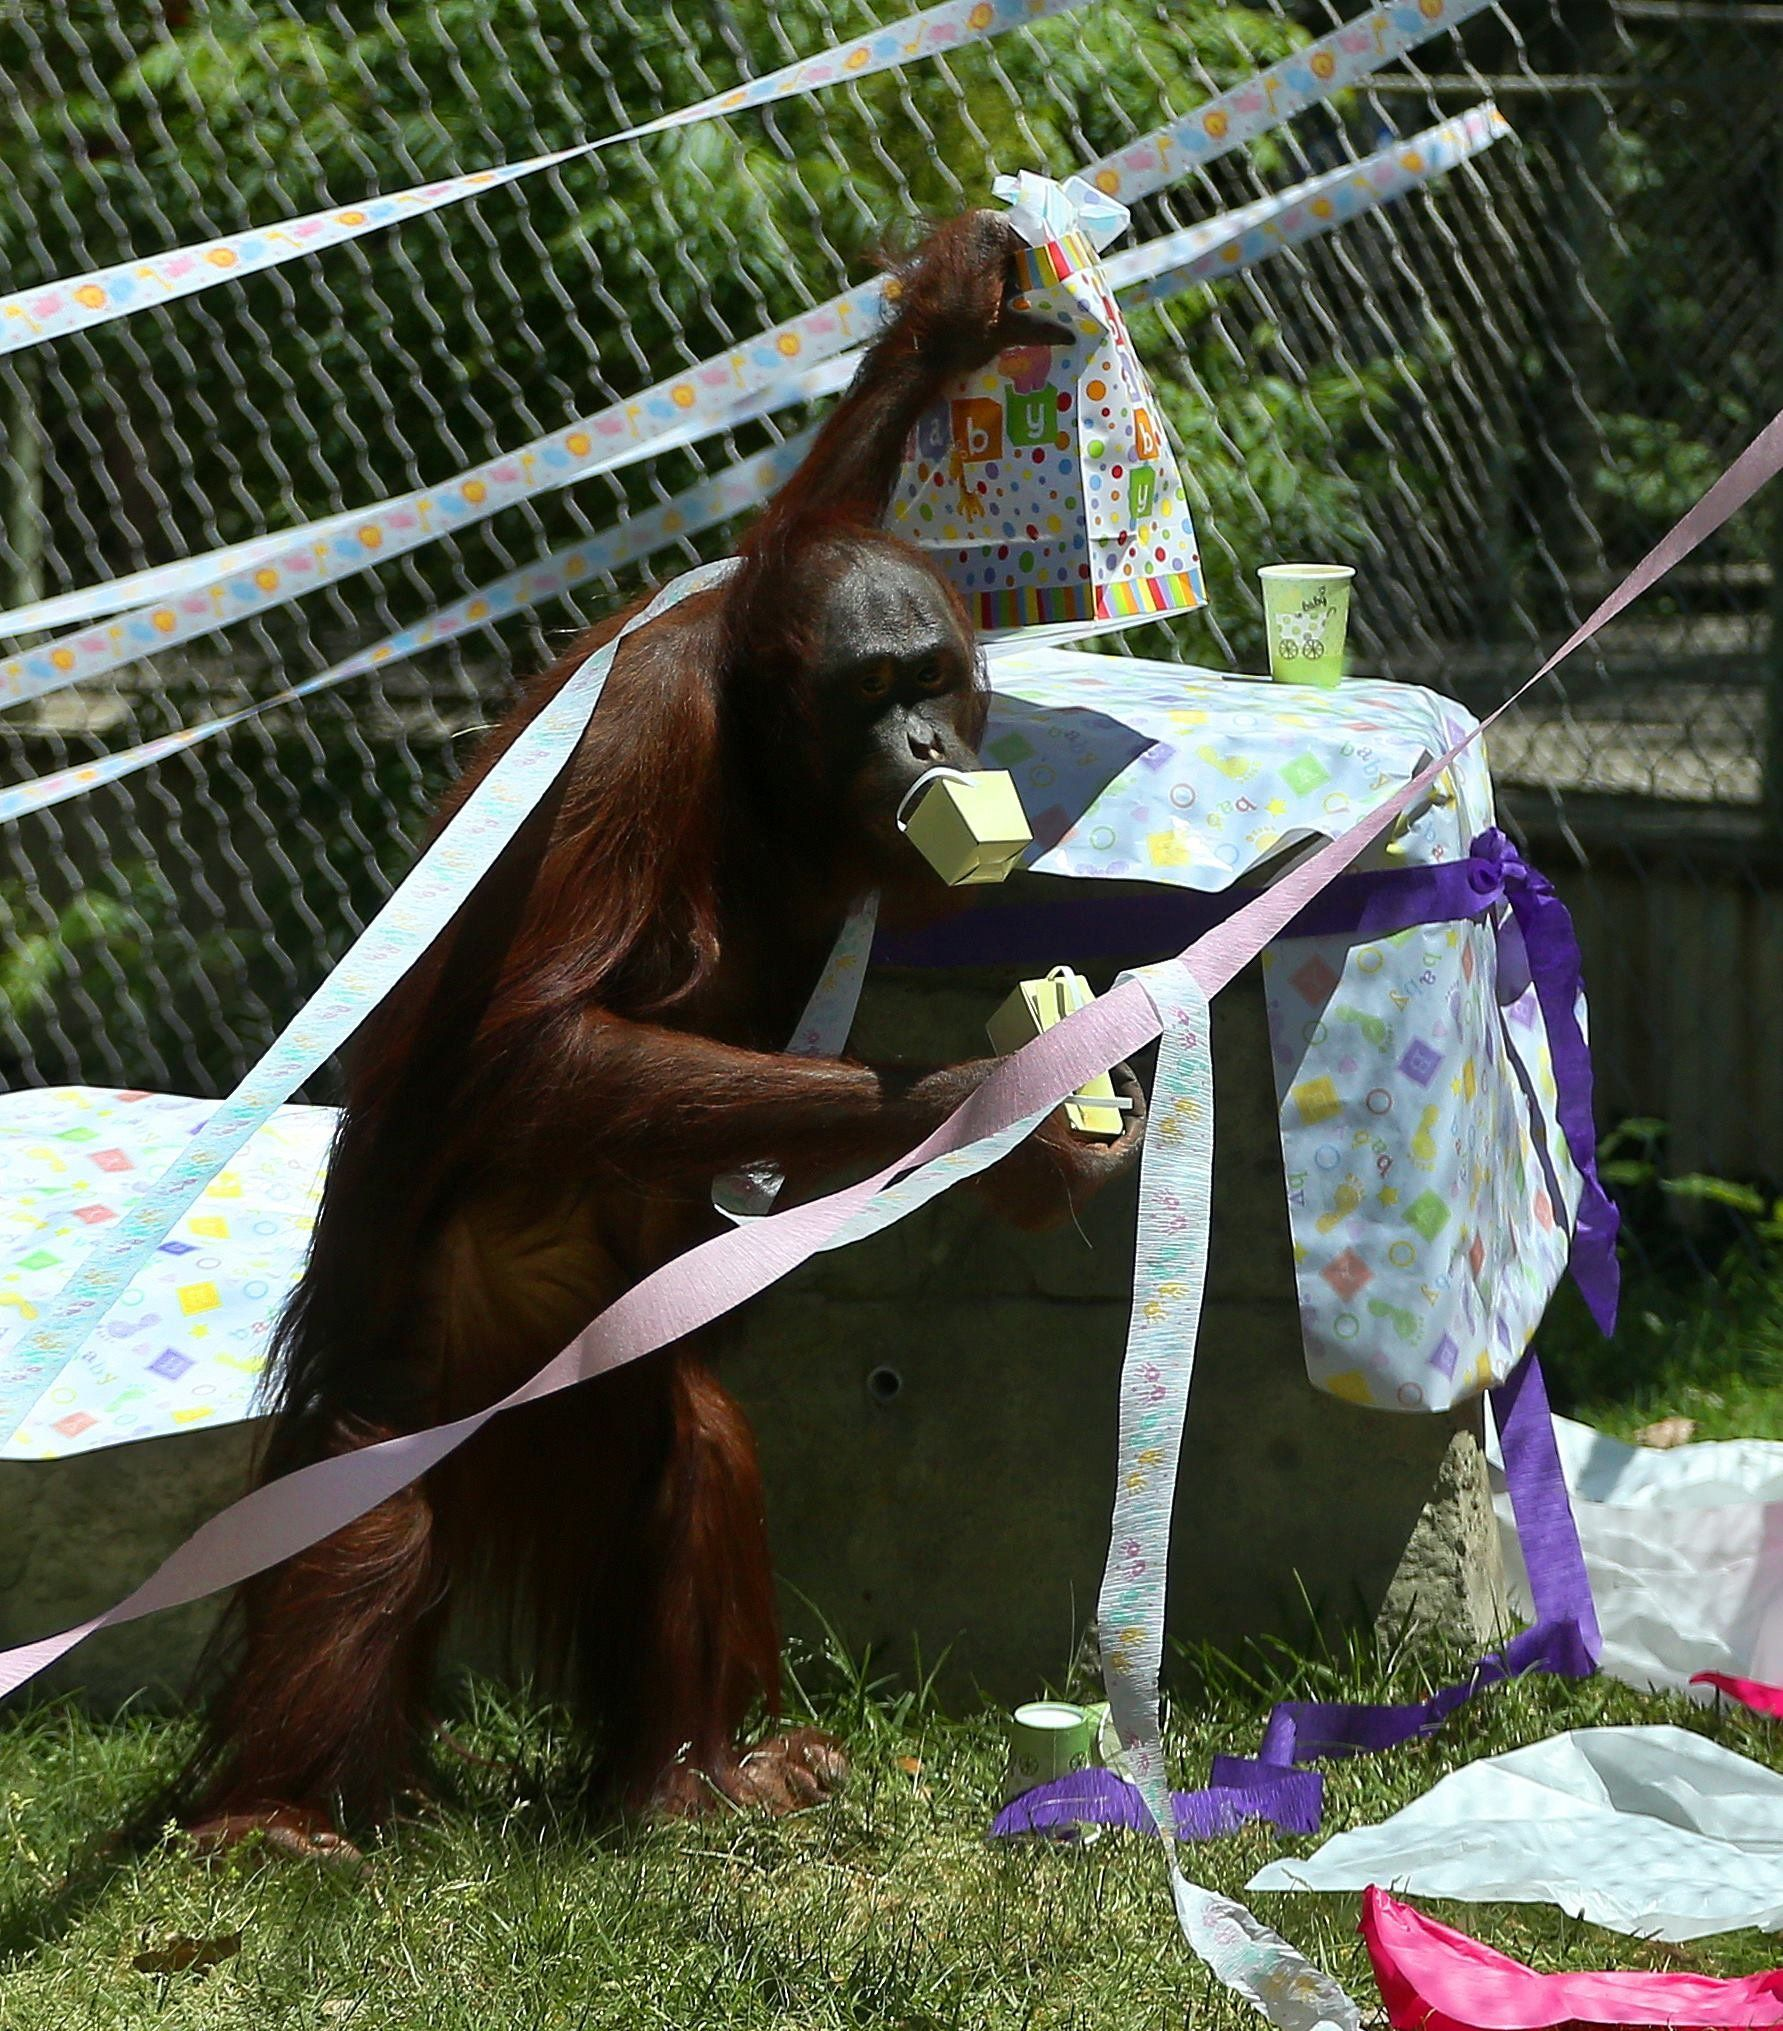 This Pregnant Orangutan Is Having A Baby Shower, Registered At Target